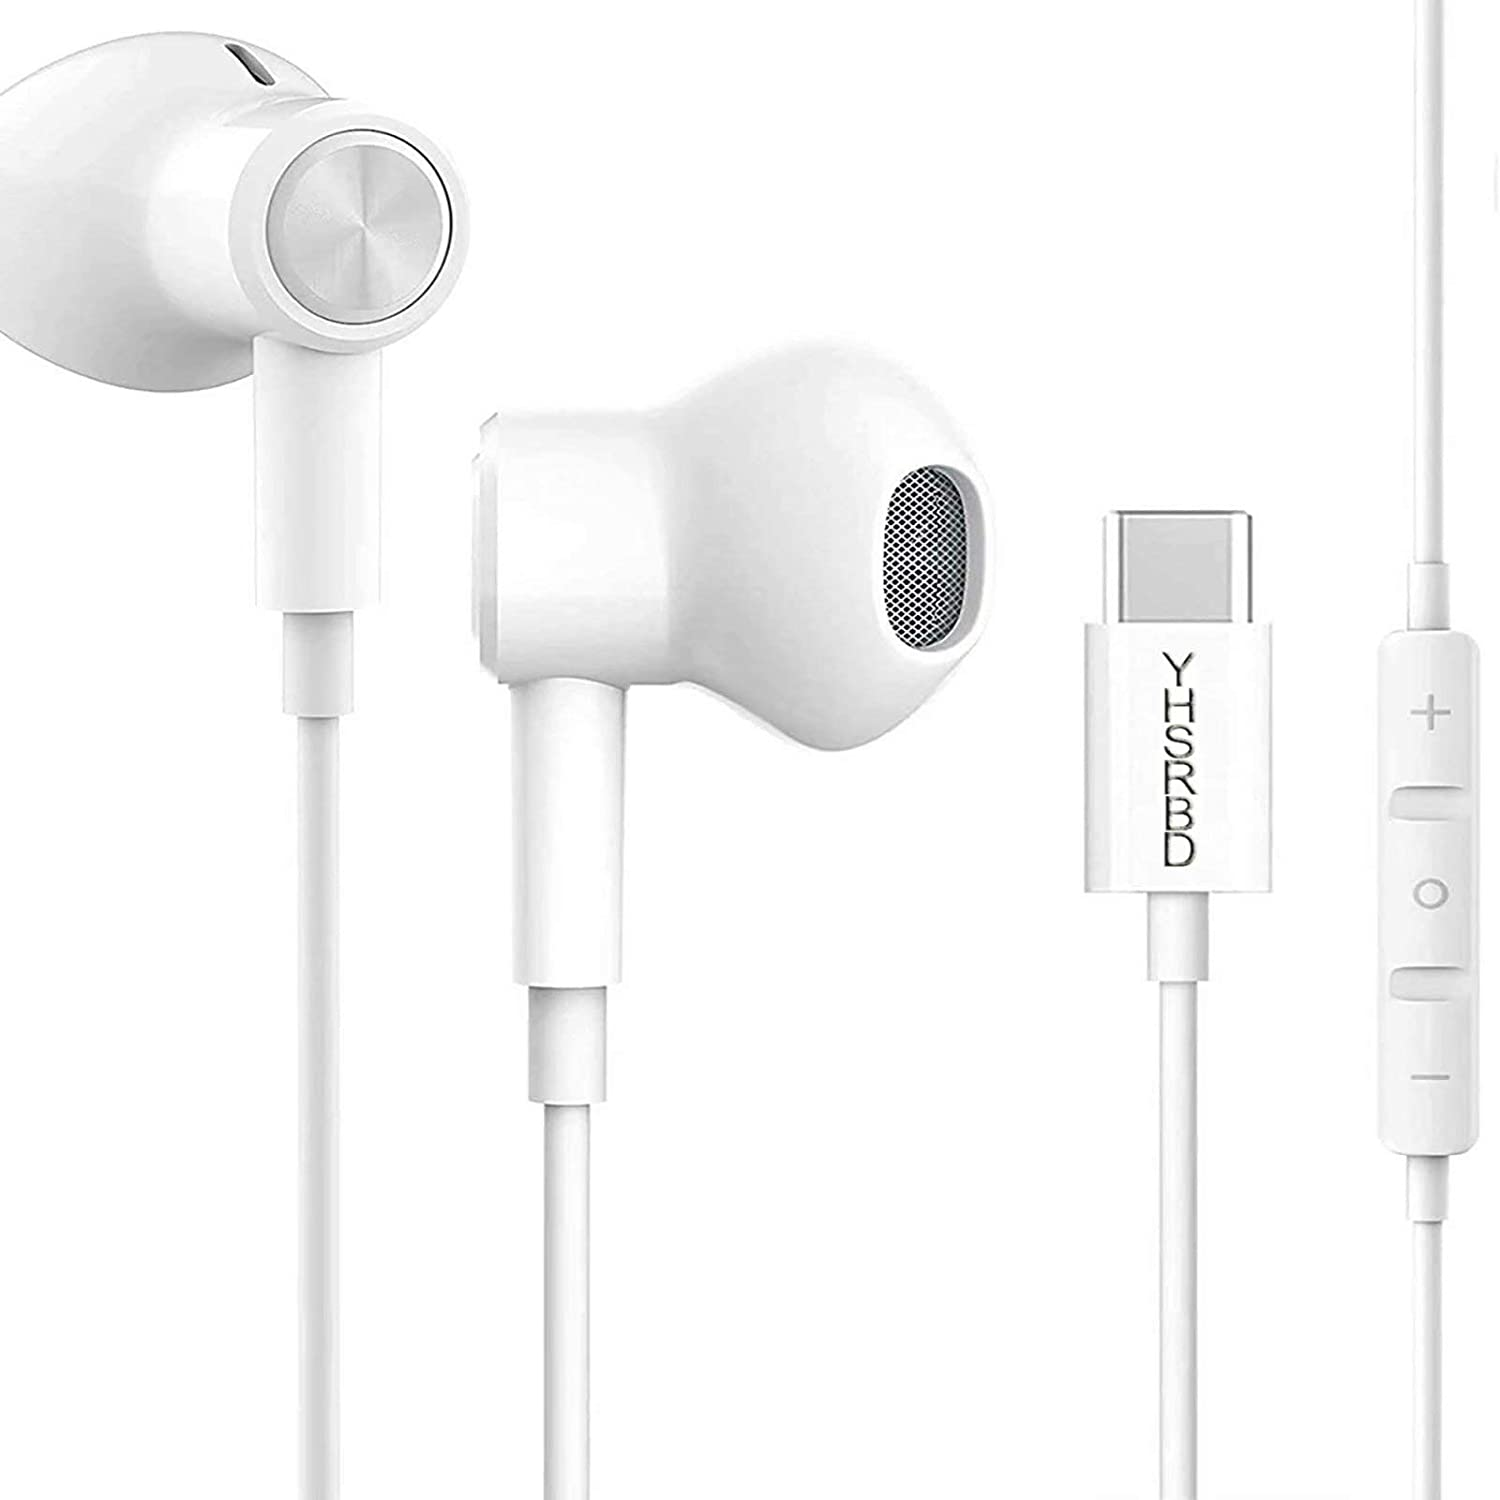 USB C Headphone HiFi Stereo in Ear USB C Earbuds Type C Headphones with Microphone Bass Earbud with Volume Control Compatible with Google Pixel 3XL OnePlus 7 Pro Huawei P30 Pro iPad Pro Sony White